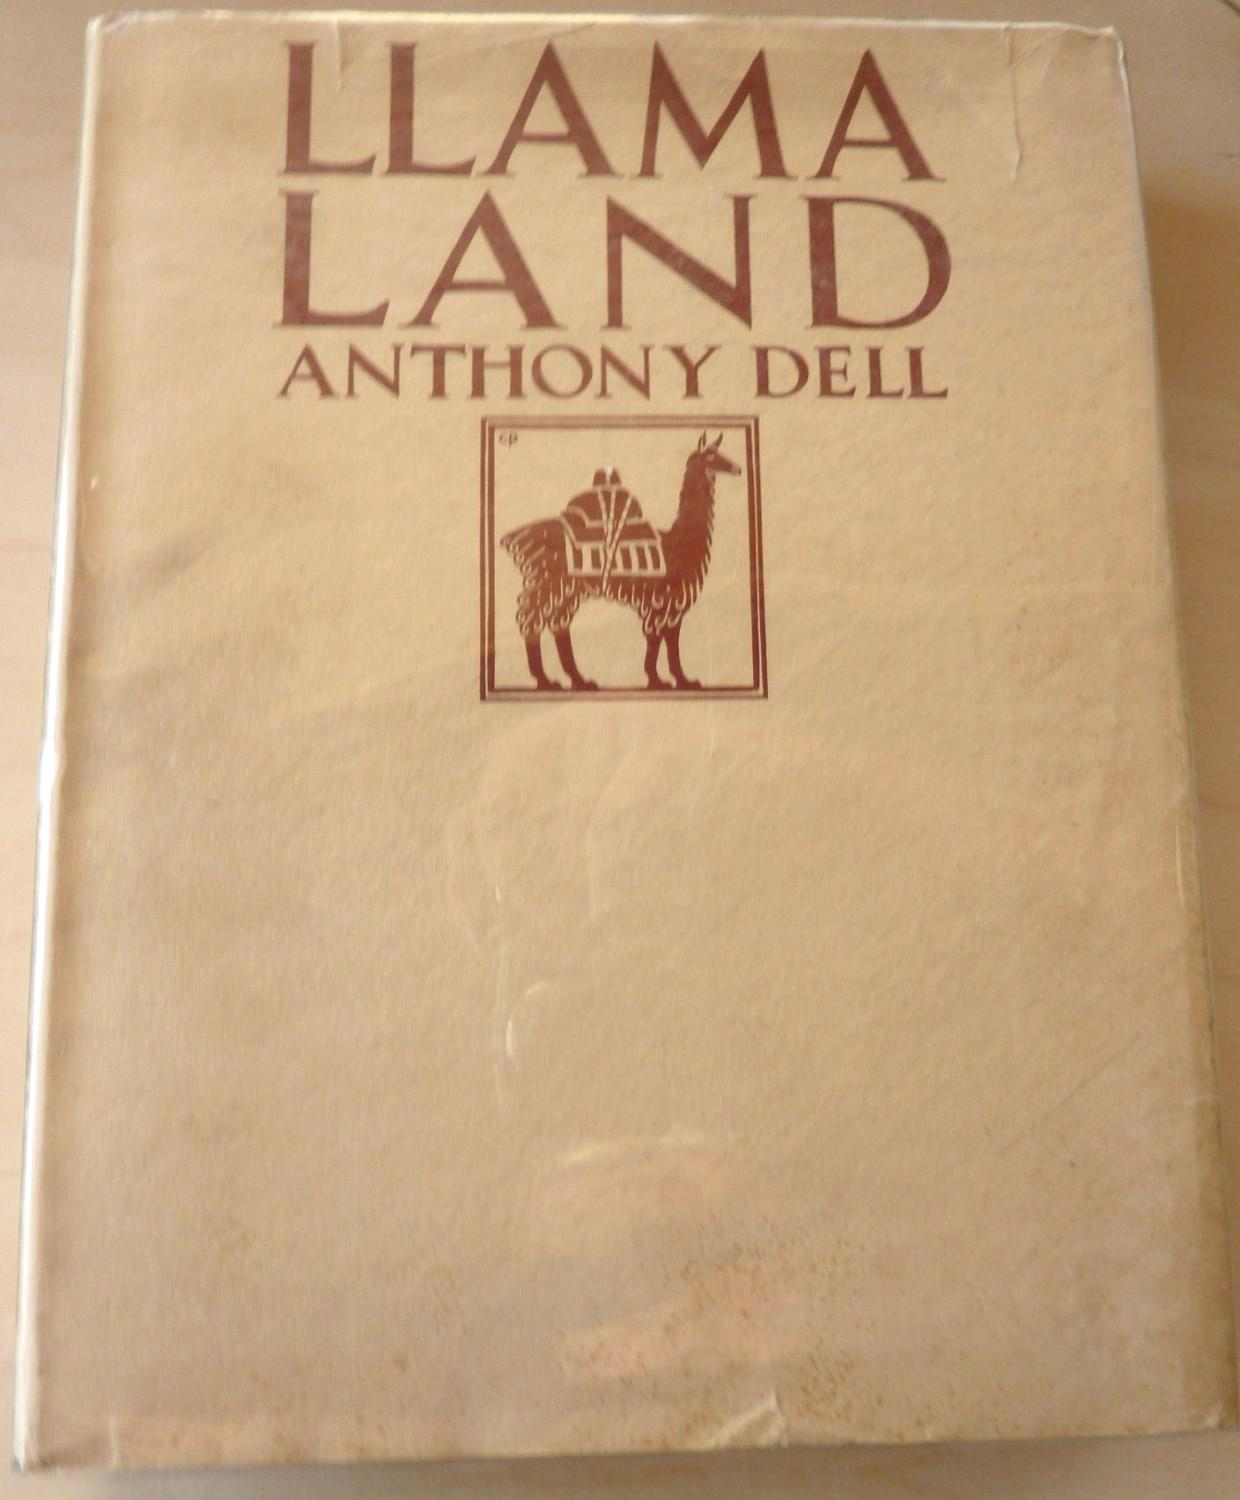 Llama Land Dell, Anthony Llama Land by Anthony Dell. First edition in dust jacket. Publisher: George H. Doran, New York, (1927). Dust jacket is in very good condition. Some to